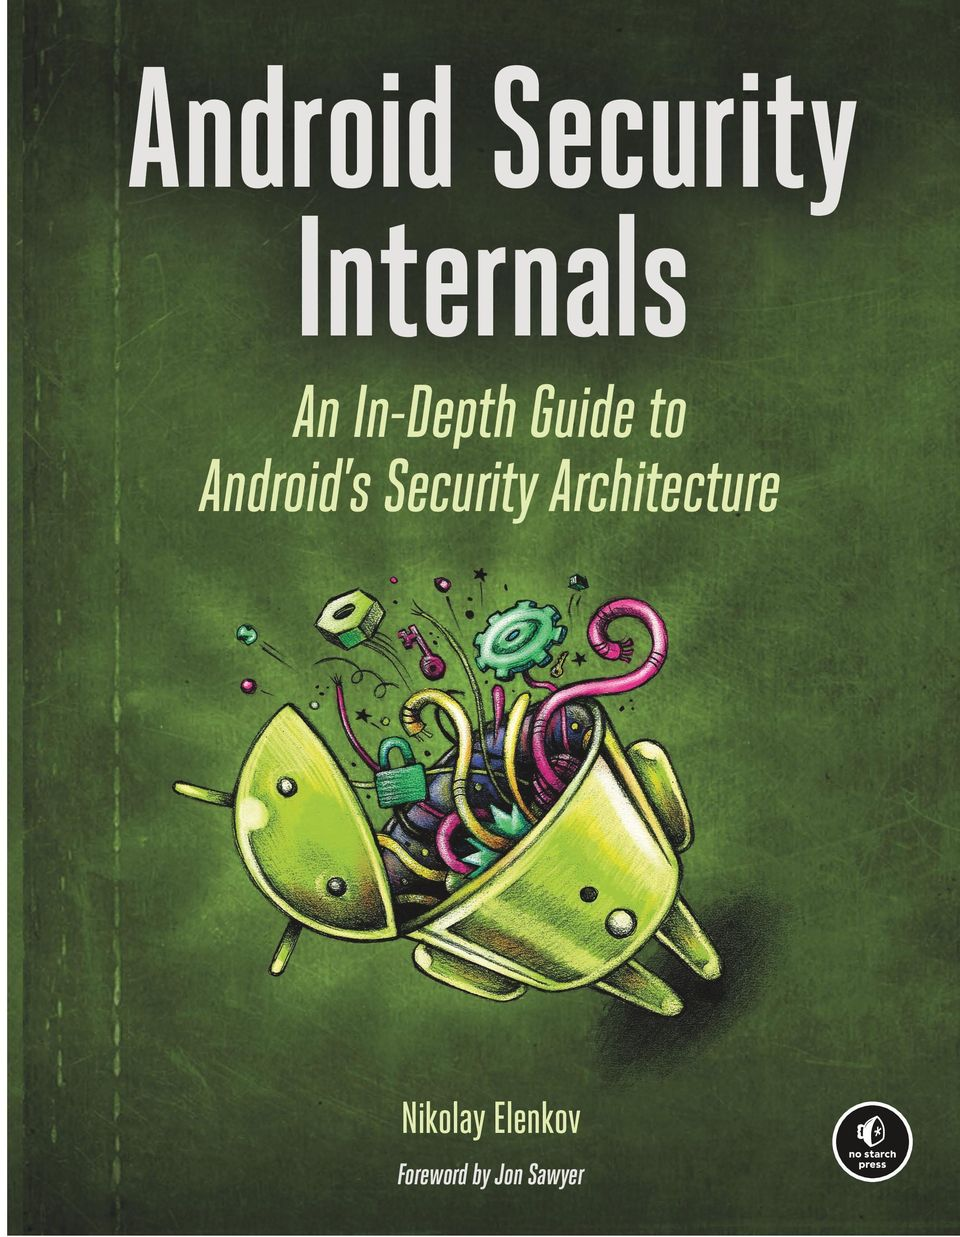 About the online account management framework and how Google accounts integrate with Android In Android Security Internals, top Android security expert Nikolay Elenkov takes us under the hood of the